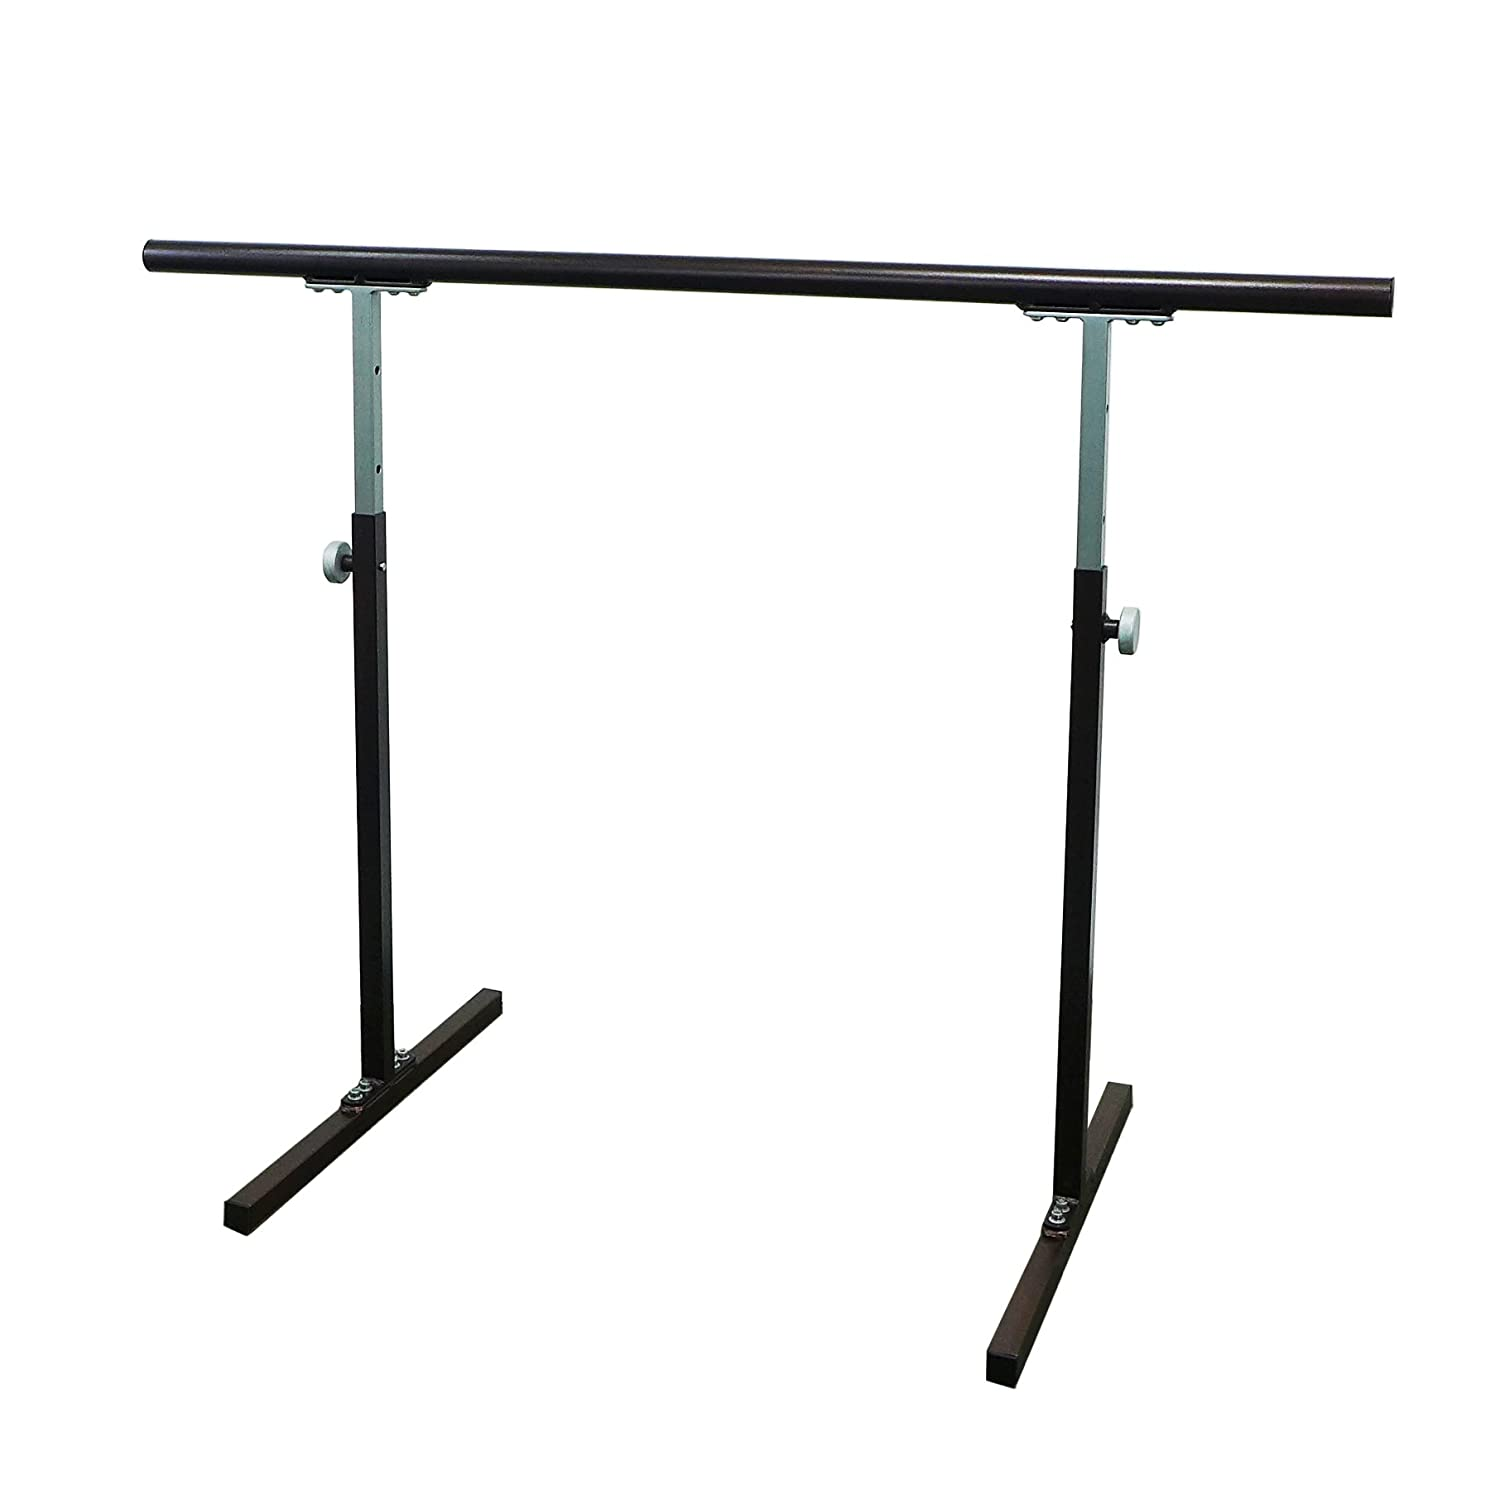 9. Softtouch Freestanding Single Ballet Barre - Best Single Ballet Barre